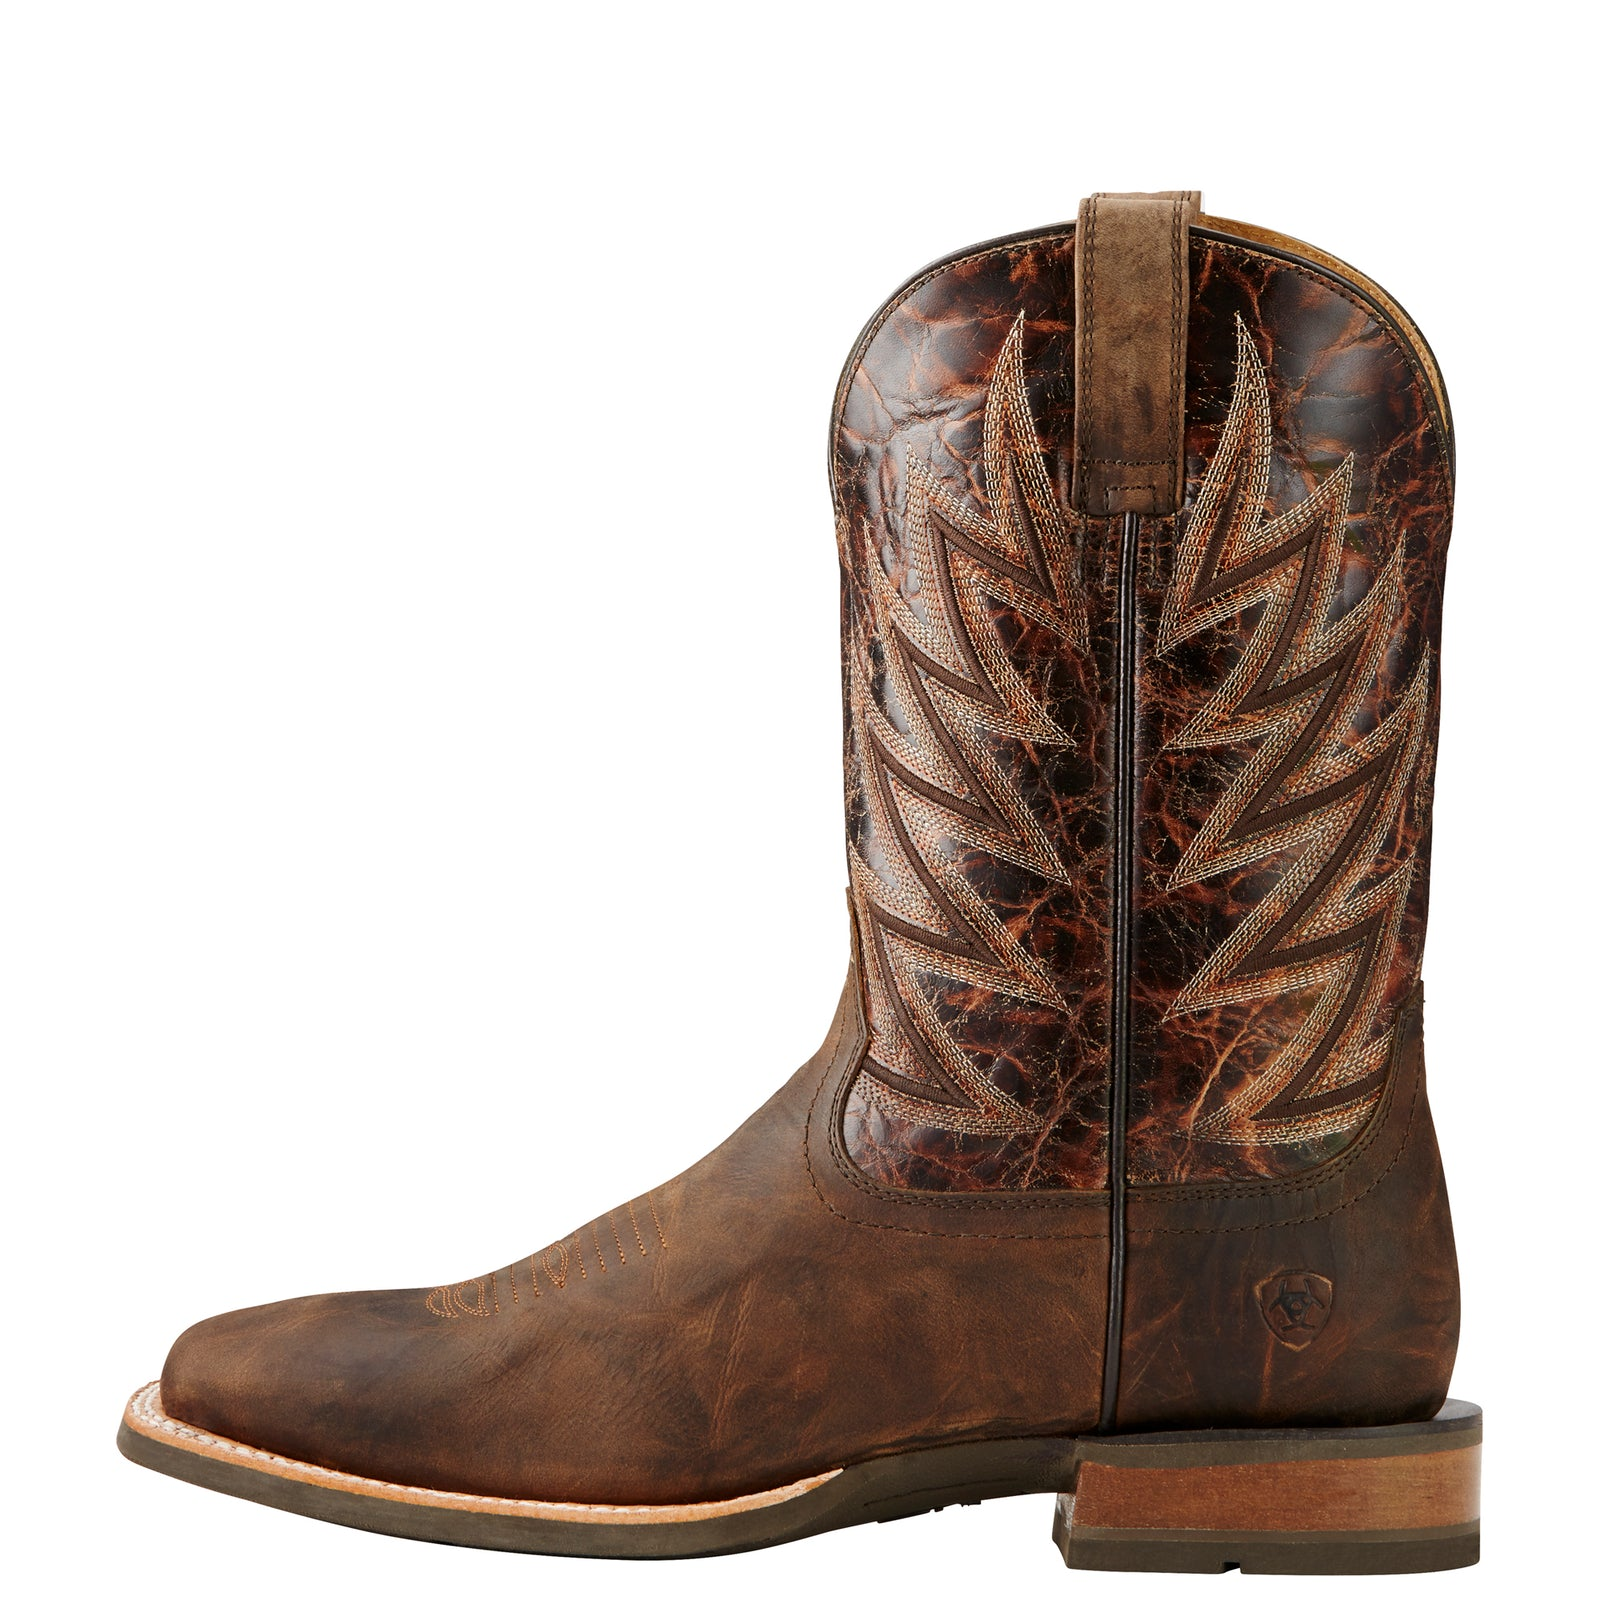 Ariat Men's Challenger Square Toe Boots